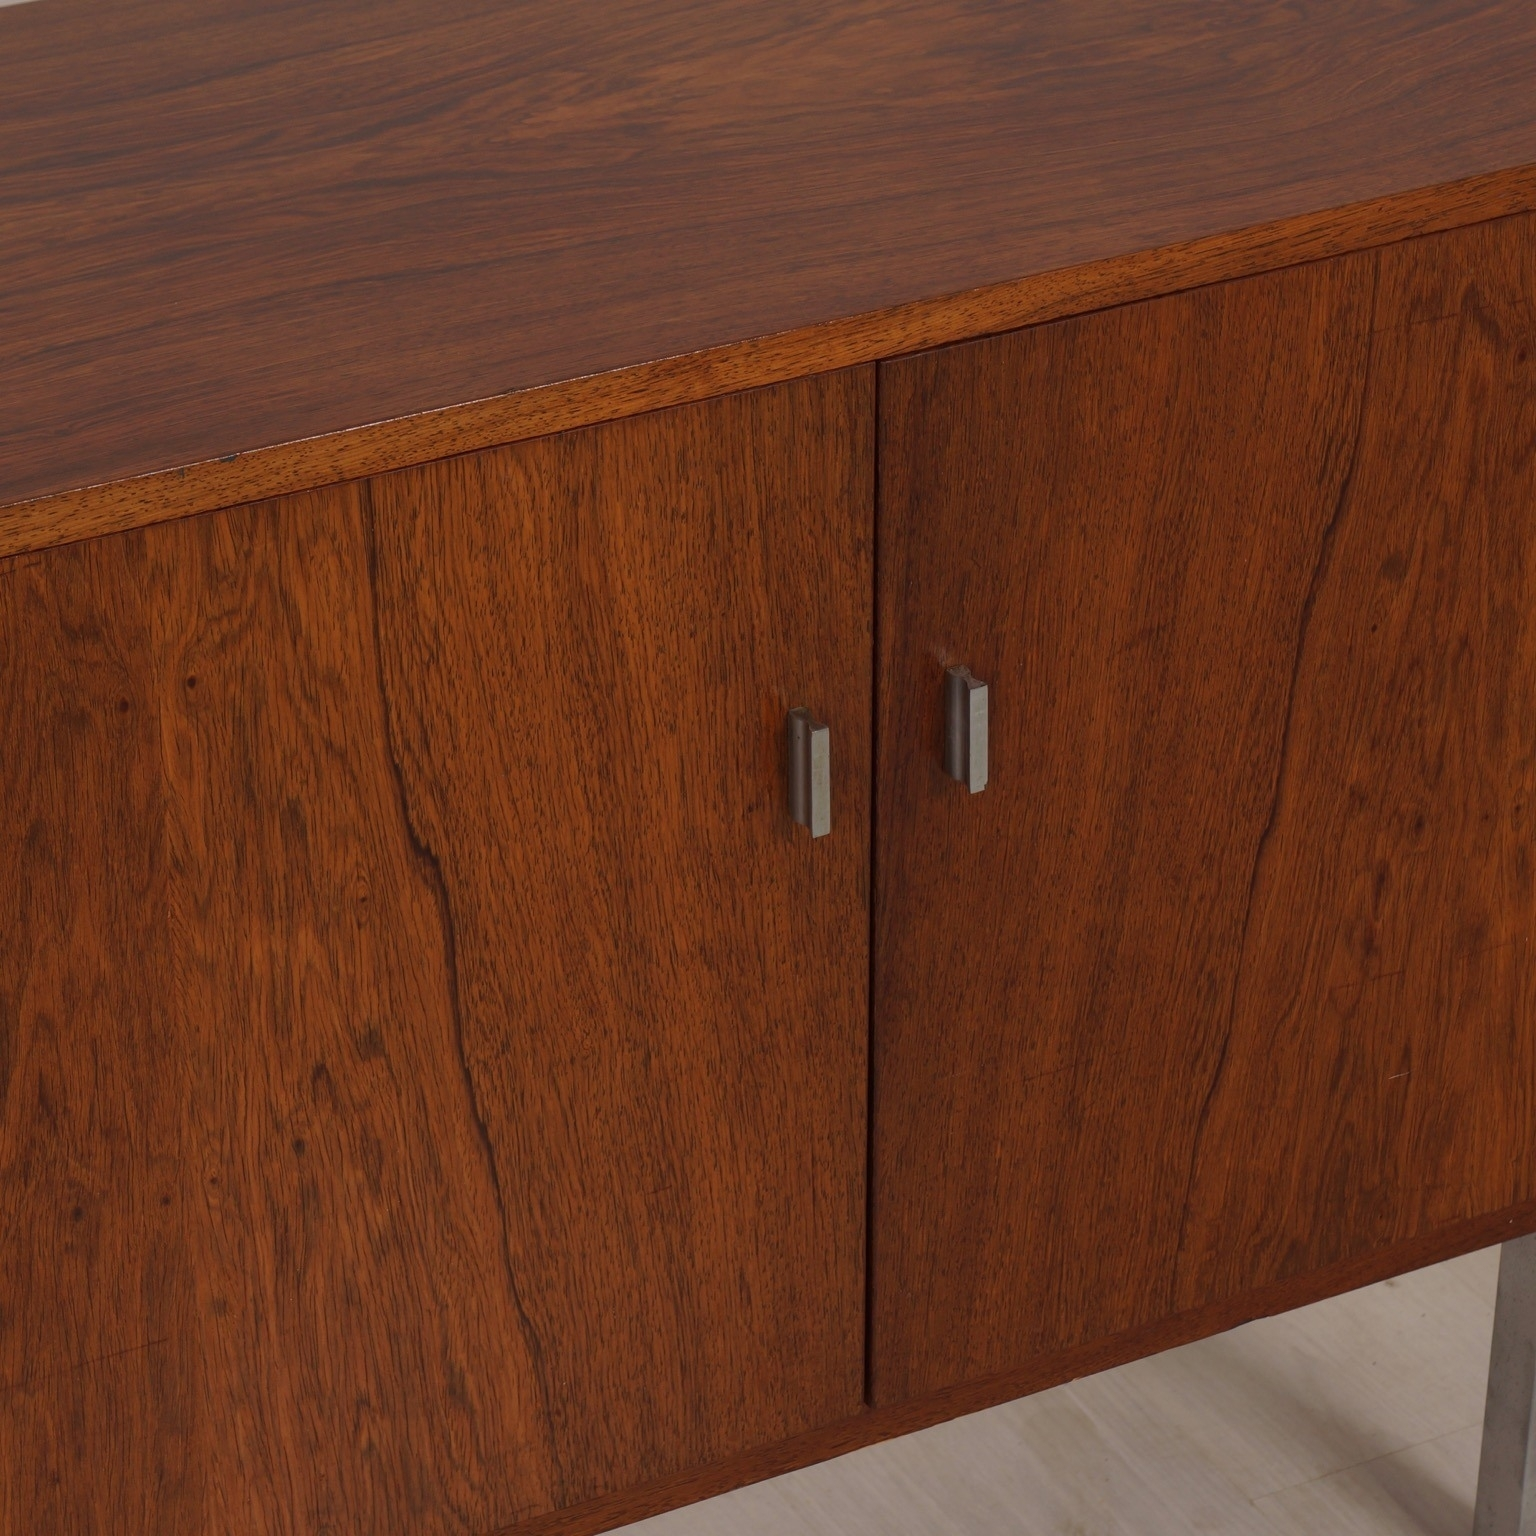 Vintage Sideboard Made Of Rosewood, 1960S – Ztijl Design For Most Recent Vintage Brown Textured Sideboards (View 15 of 20)